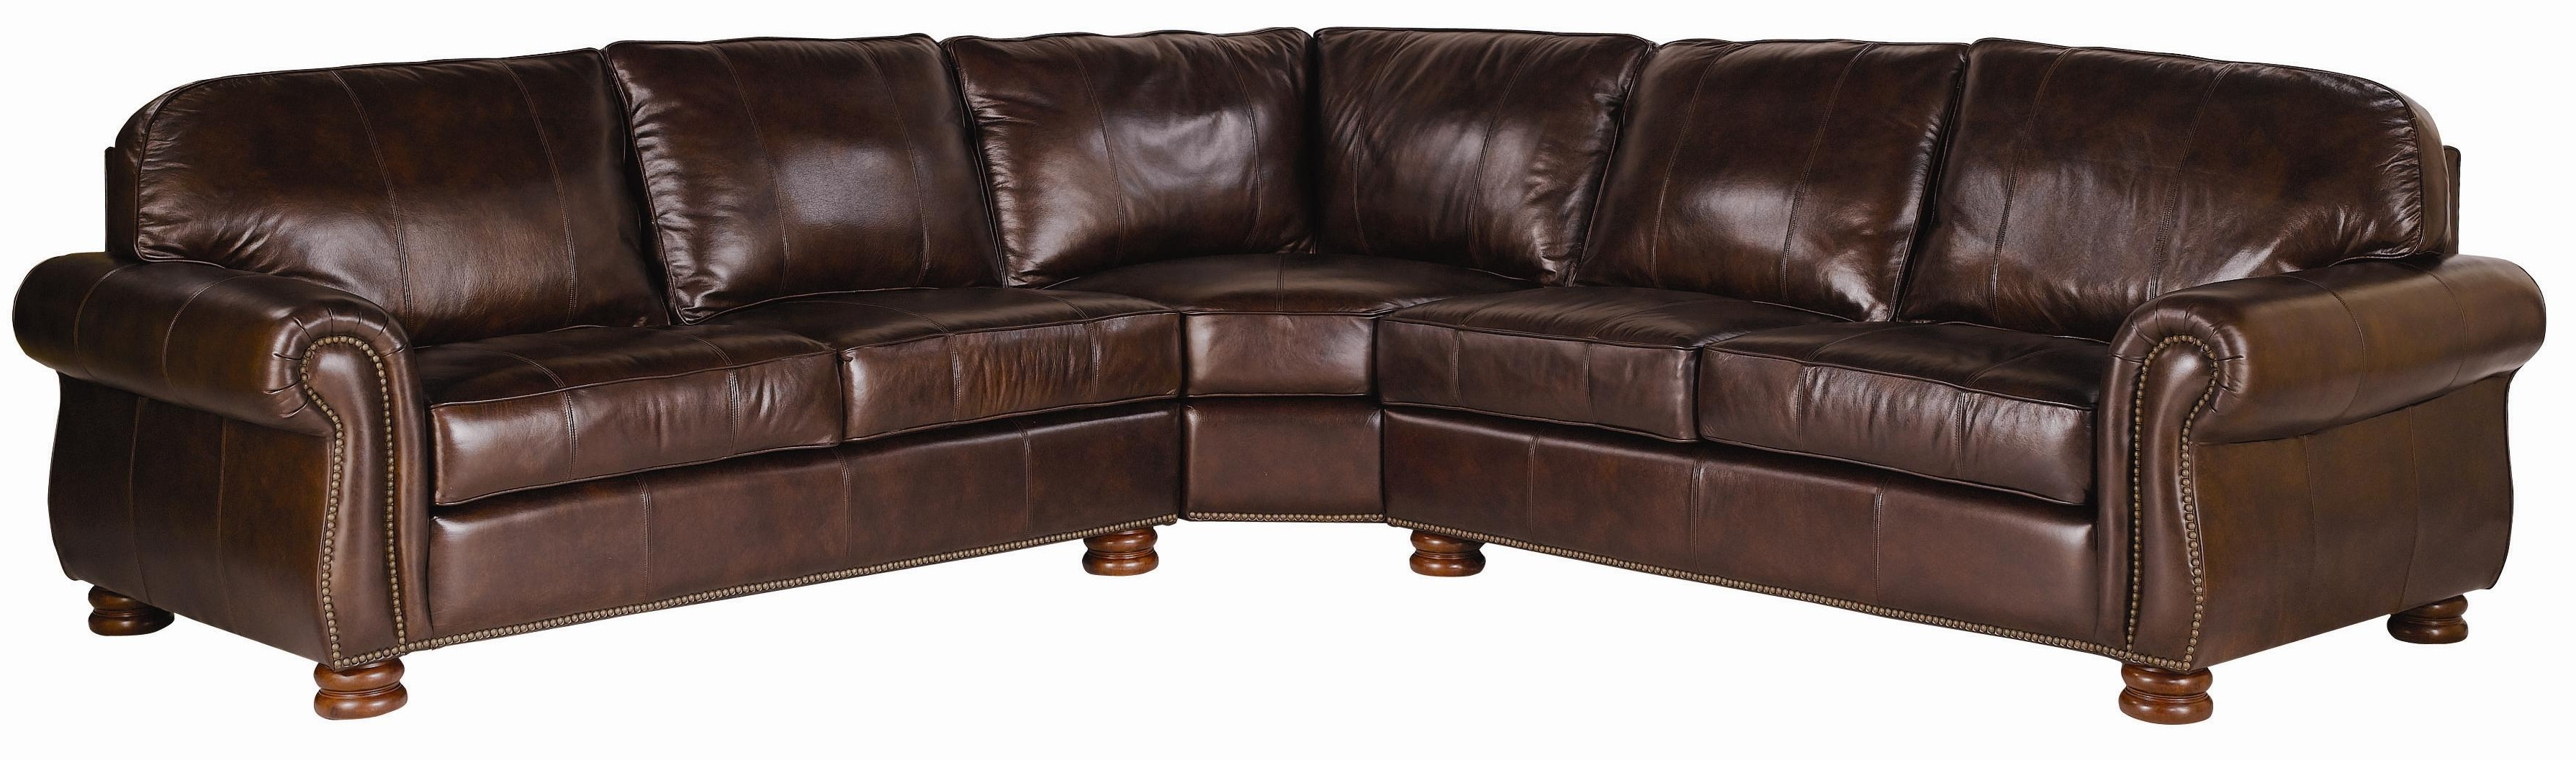 Thomasville Sectional Sofas Pertaining To Most Up To Date Thomasville® Leather Choices – Benjamin Leather Select 3 Piece (View 7 of 20)